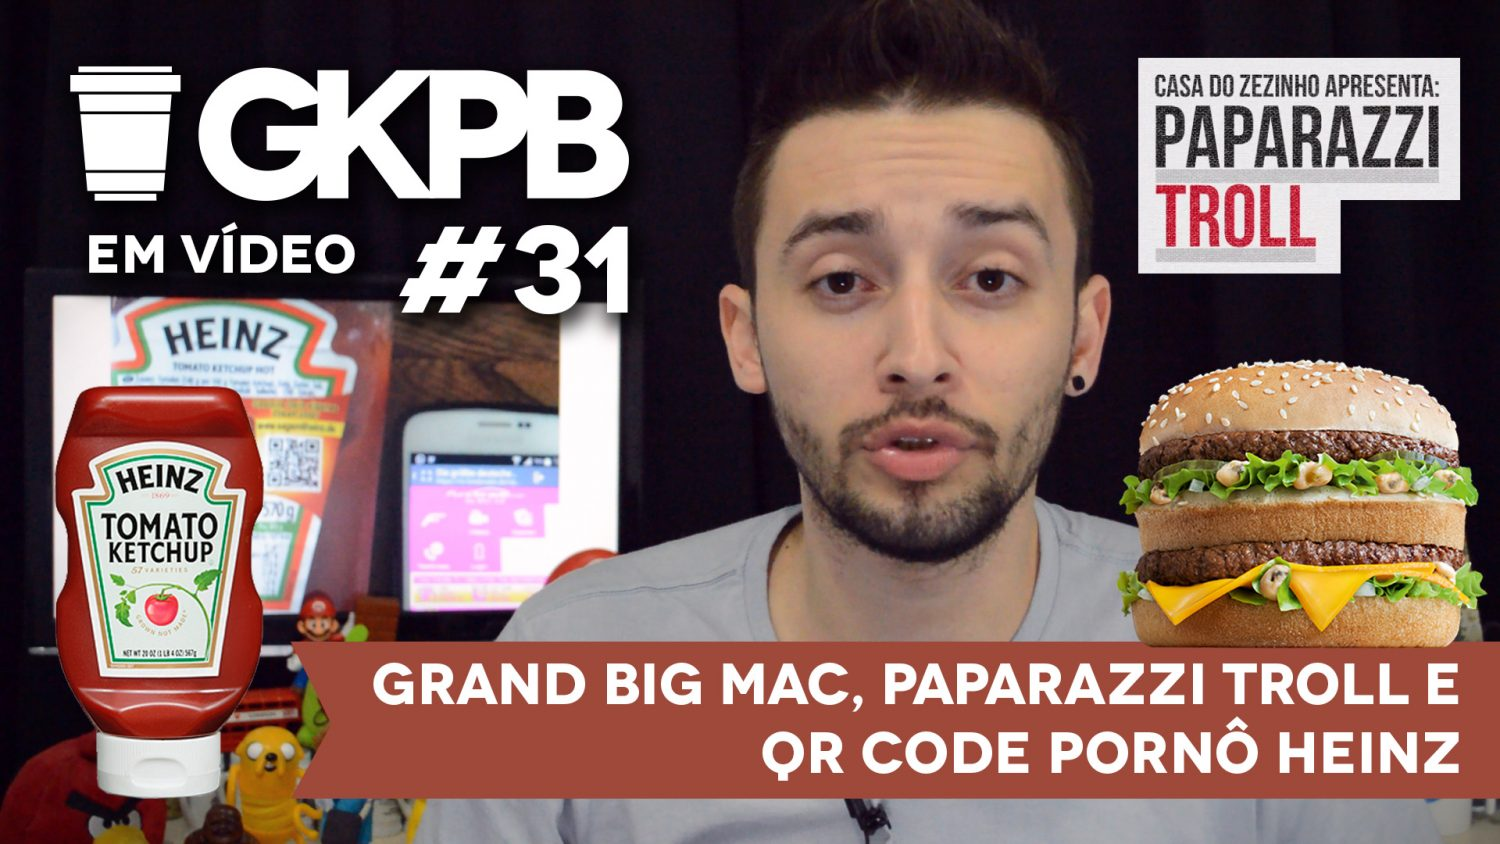 gkpb-em-video-31-grand-big-mac-paparazzi-troll-qr-code-porno-ketchup-heinz-blog-geek-publicitario